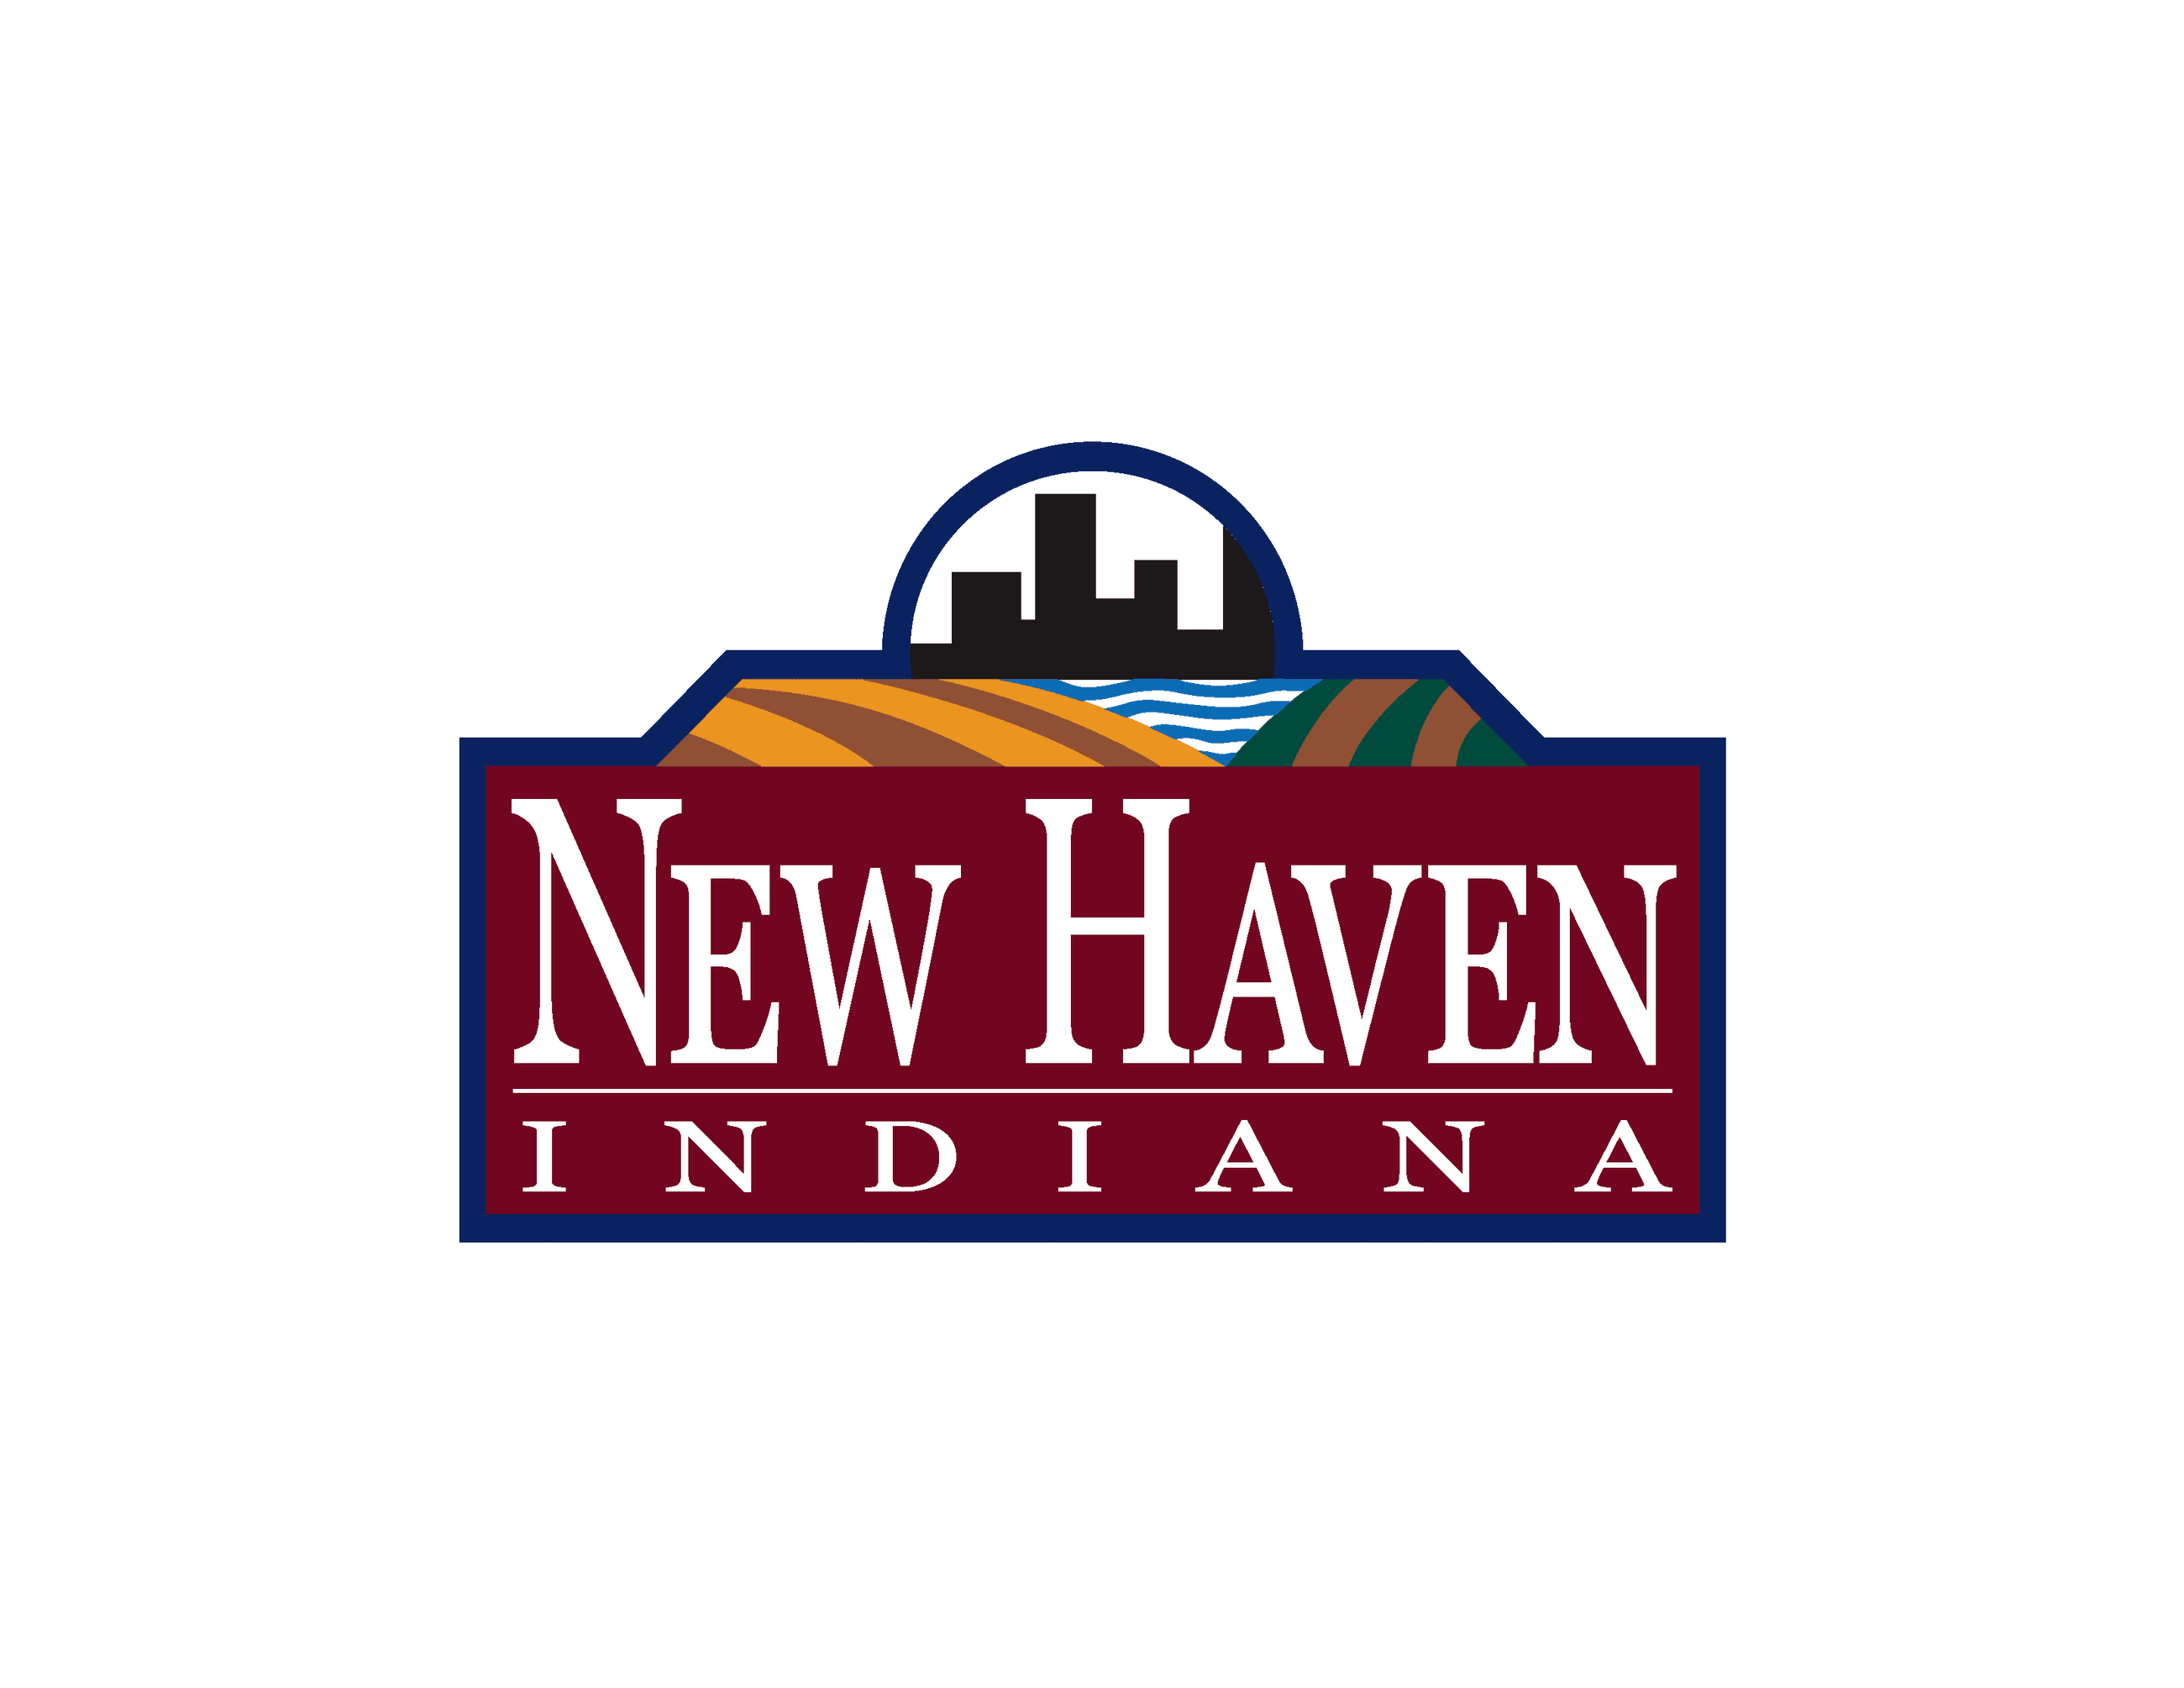 New Haven Entry Sign Artwork Vector